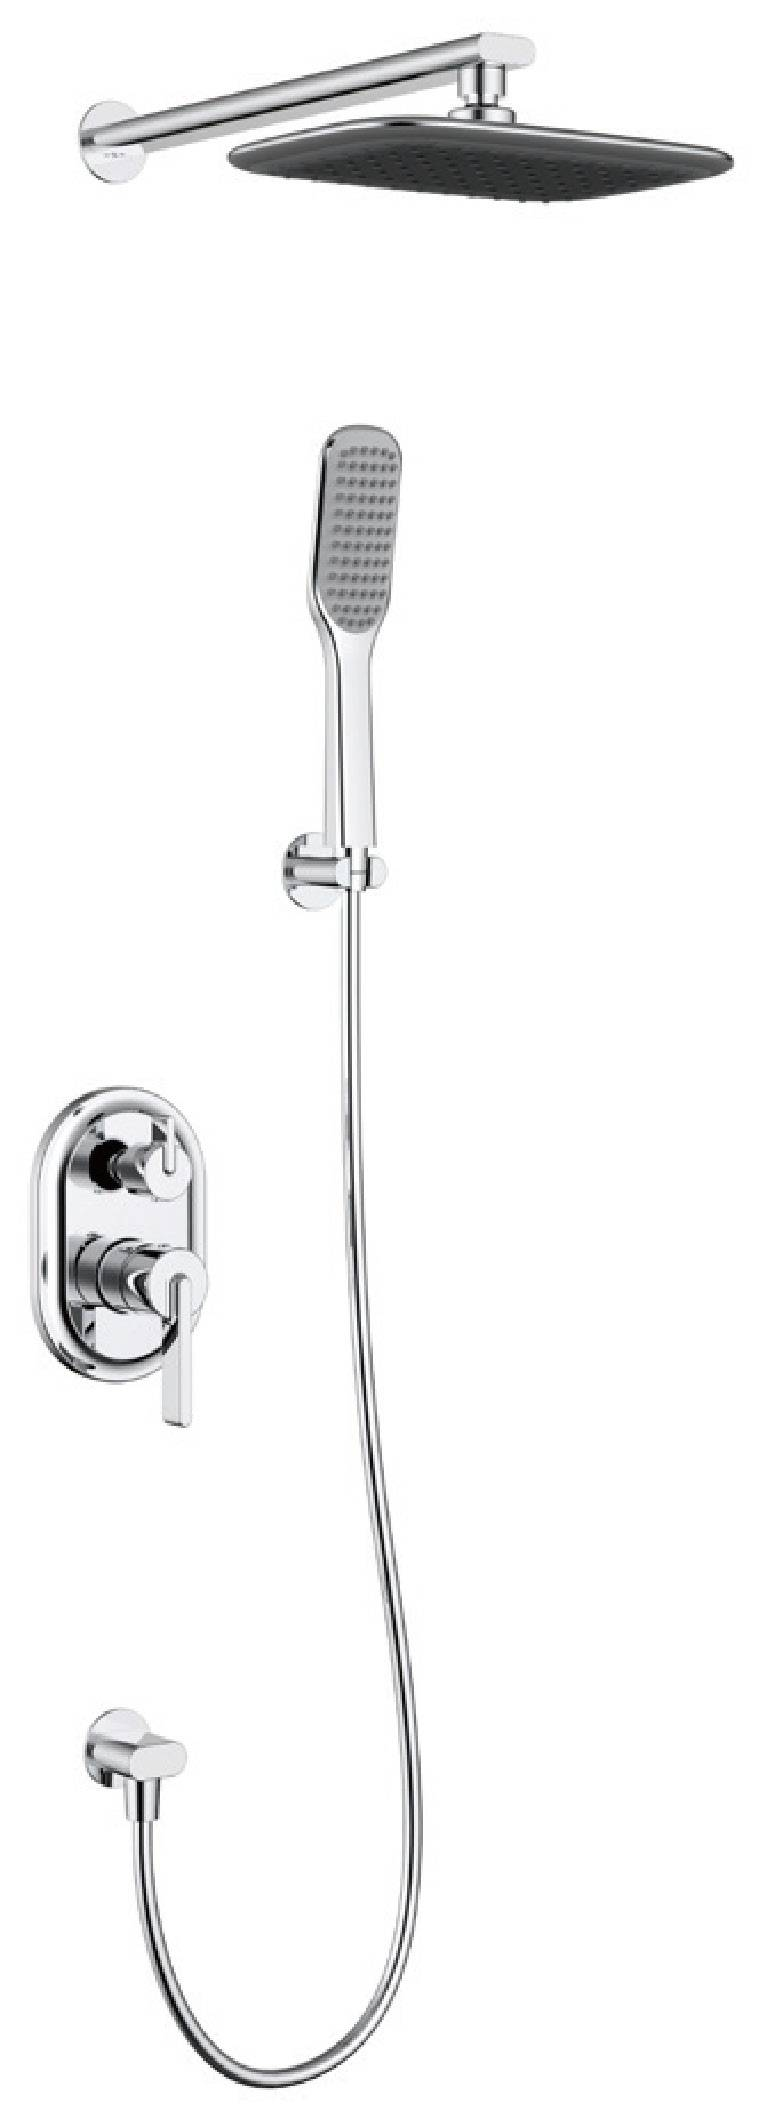 Modern chrome brass wall mounted bathroom concealed shower faucet